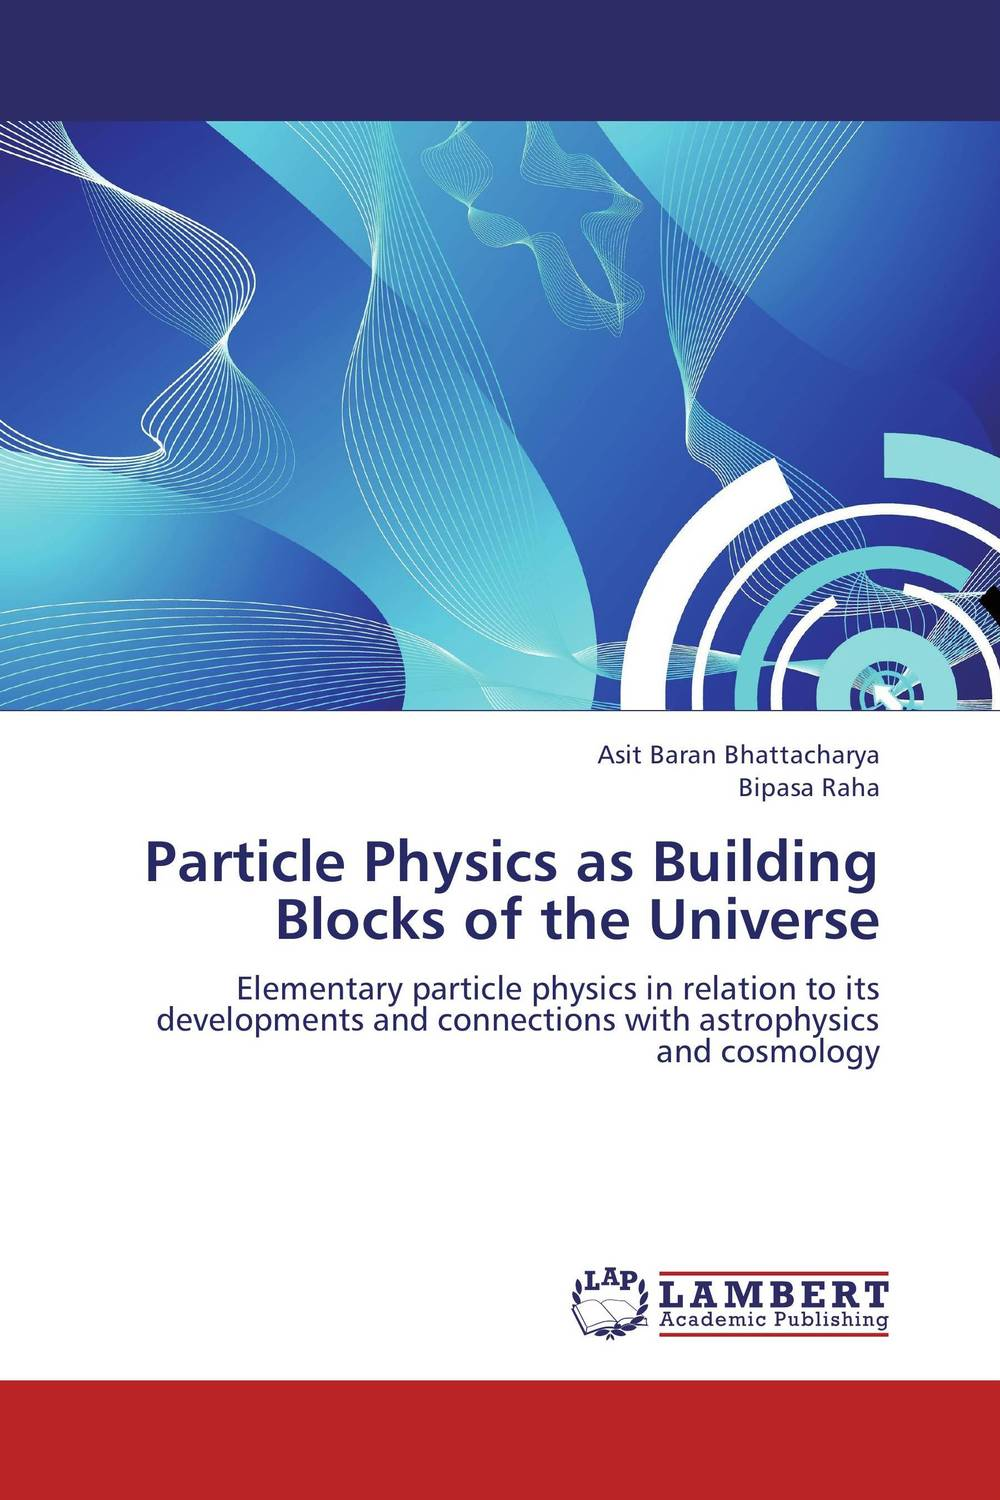 Particle Physics as Building Blocks of the Universe charles chase w bricks matter the role of supply chains in building market driven differentiation